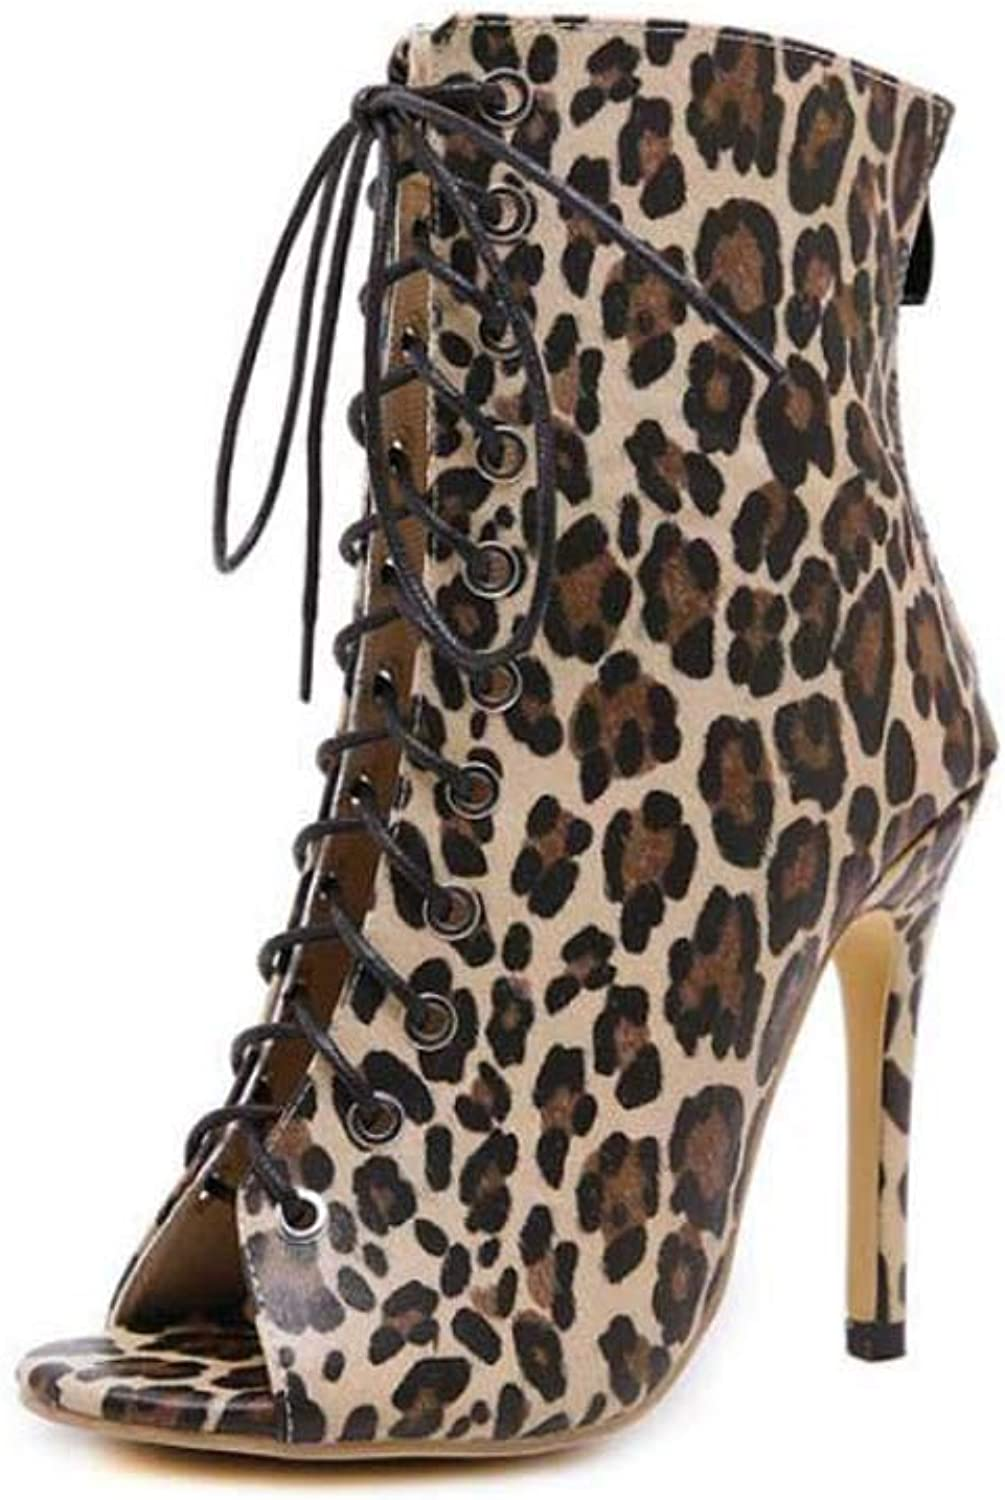 Cool Bootie Women Sexy Peep Toe Cross Straps Leopard Print Ankle Booties Roma shoes OL Court shoes EU Size 35-40